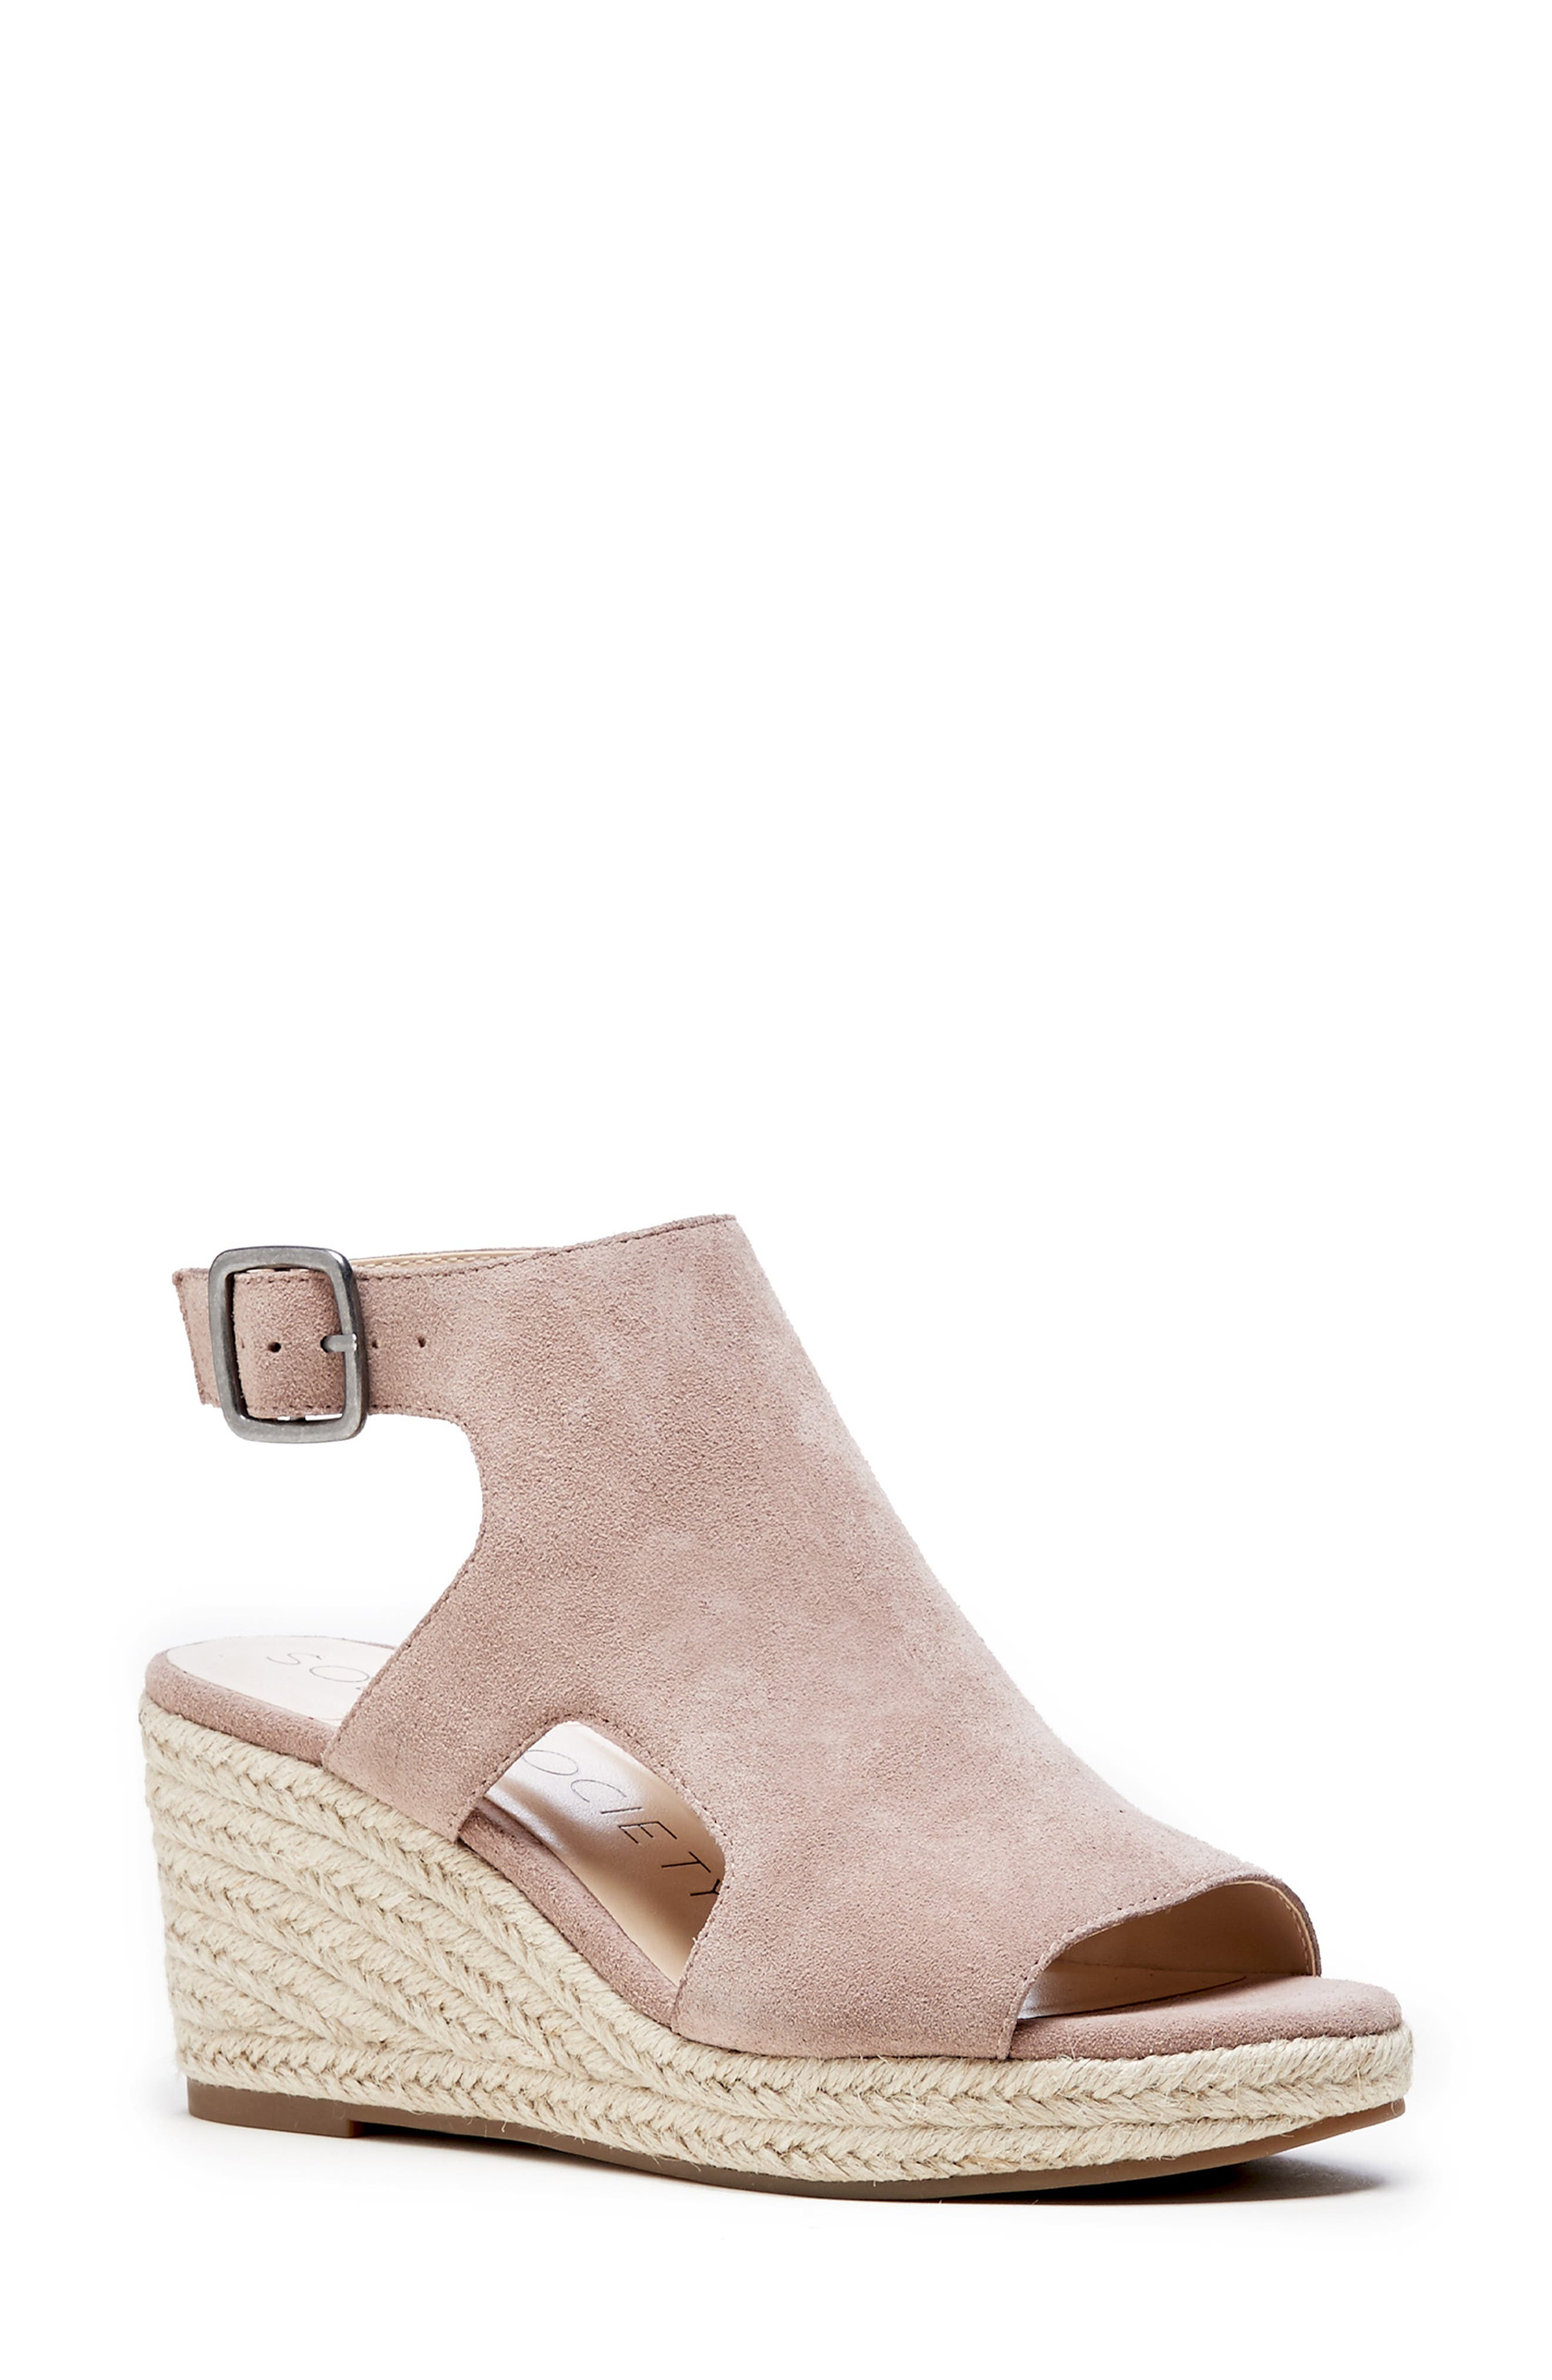 Sole Society Camreigh Espadrille Wedge- Pink